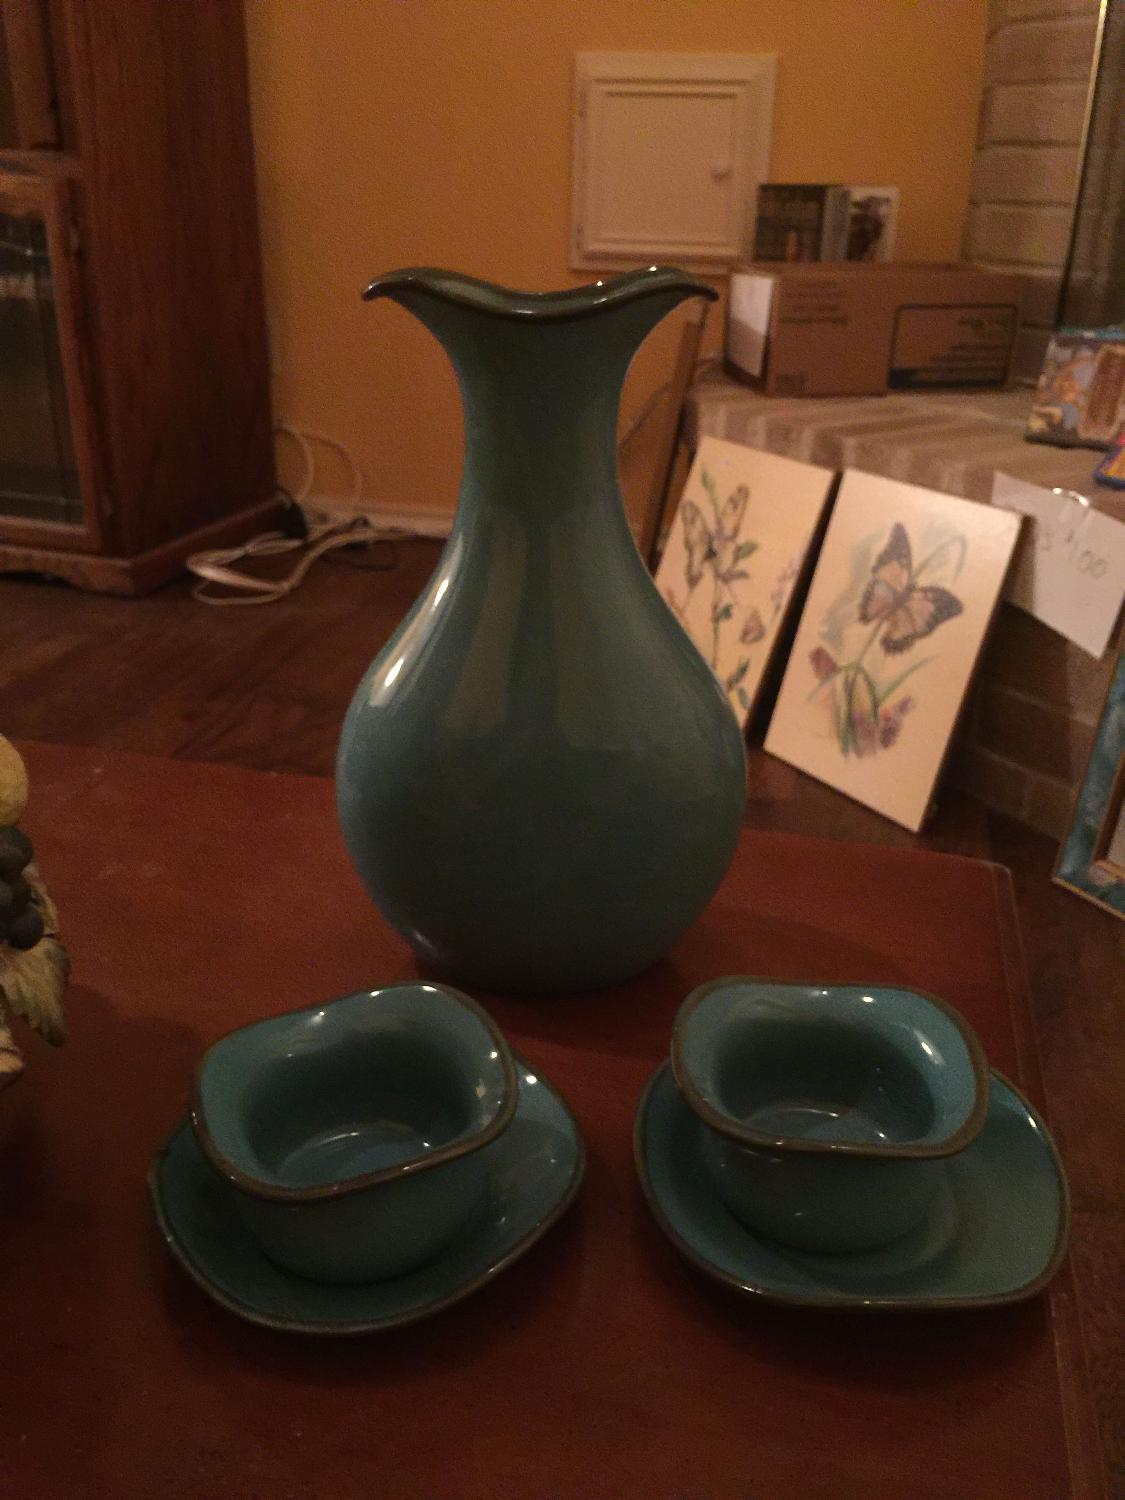 Best southern living vase matching bowels for sale in for World decor auction san antonio